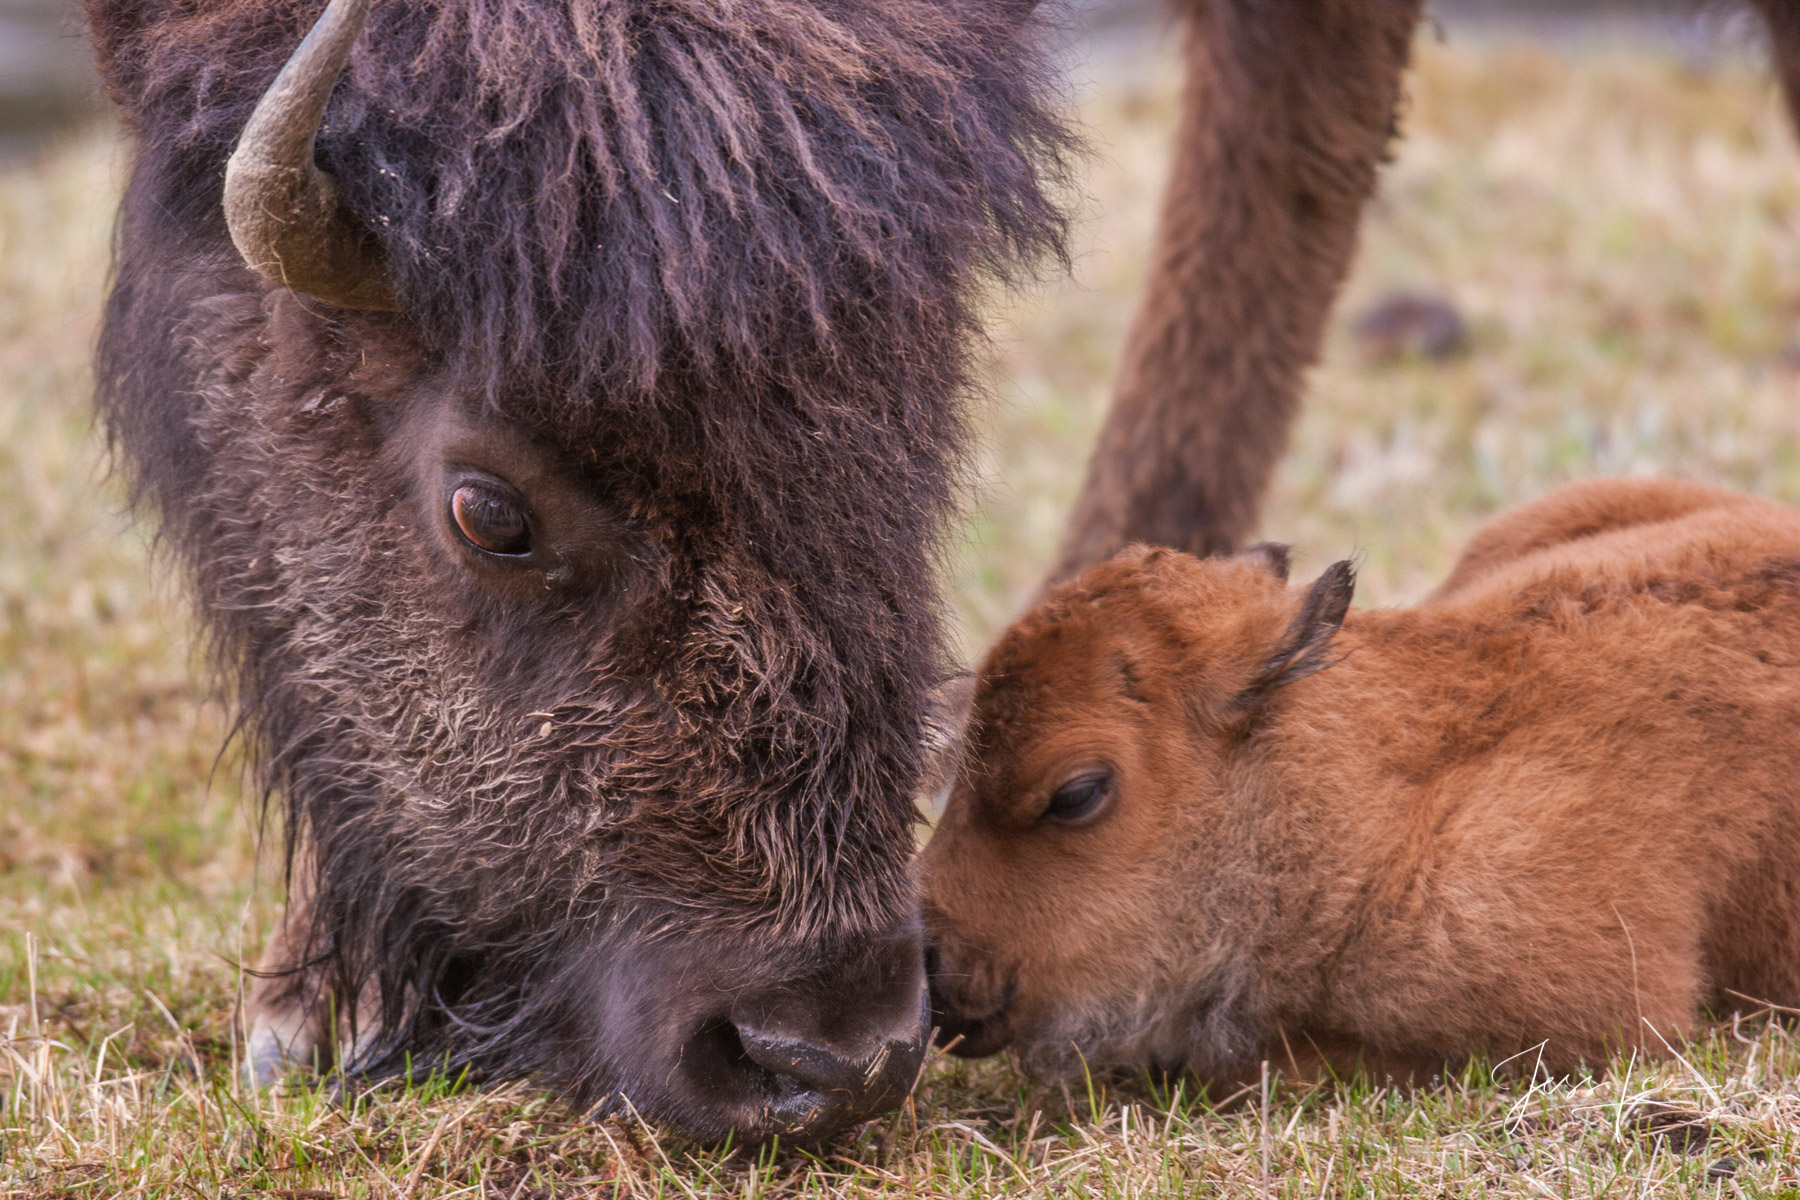 bison cow with a newborn calf, photo